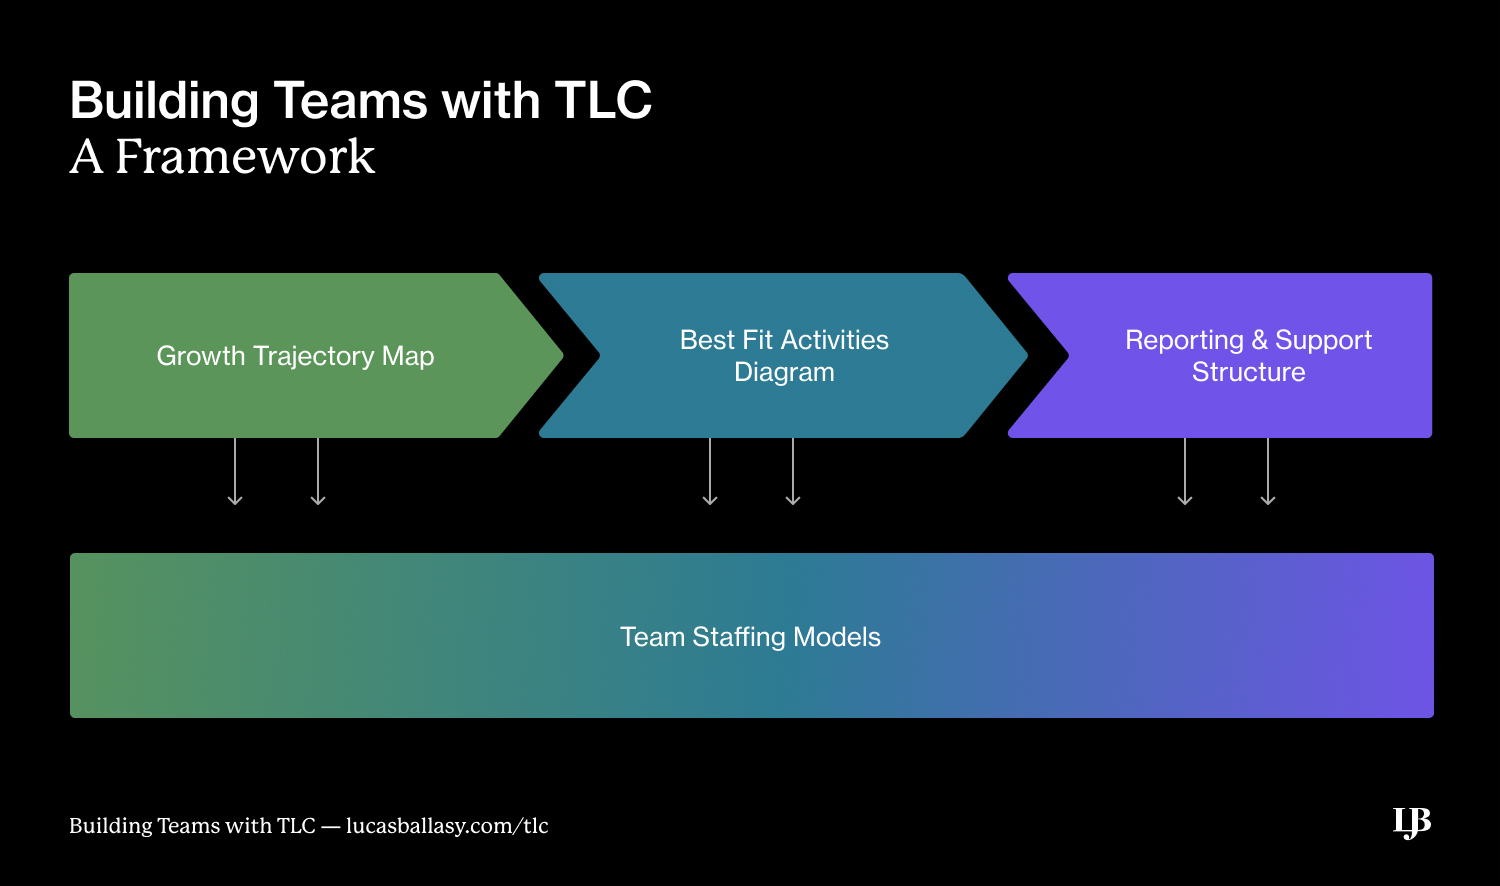 Building Teams with TLC: A Framework by Lucas Ballasy